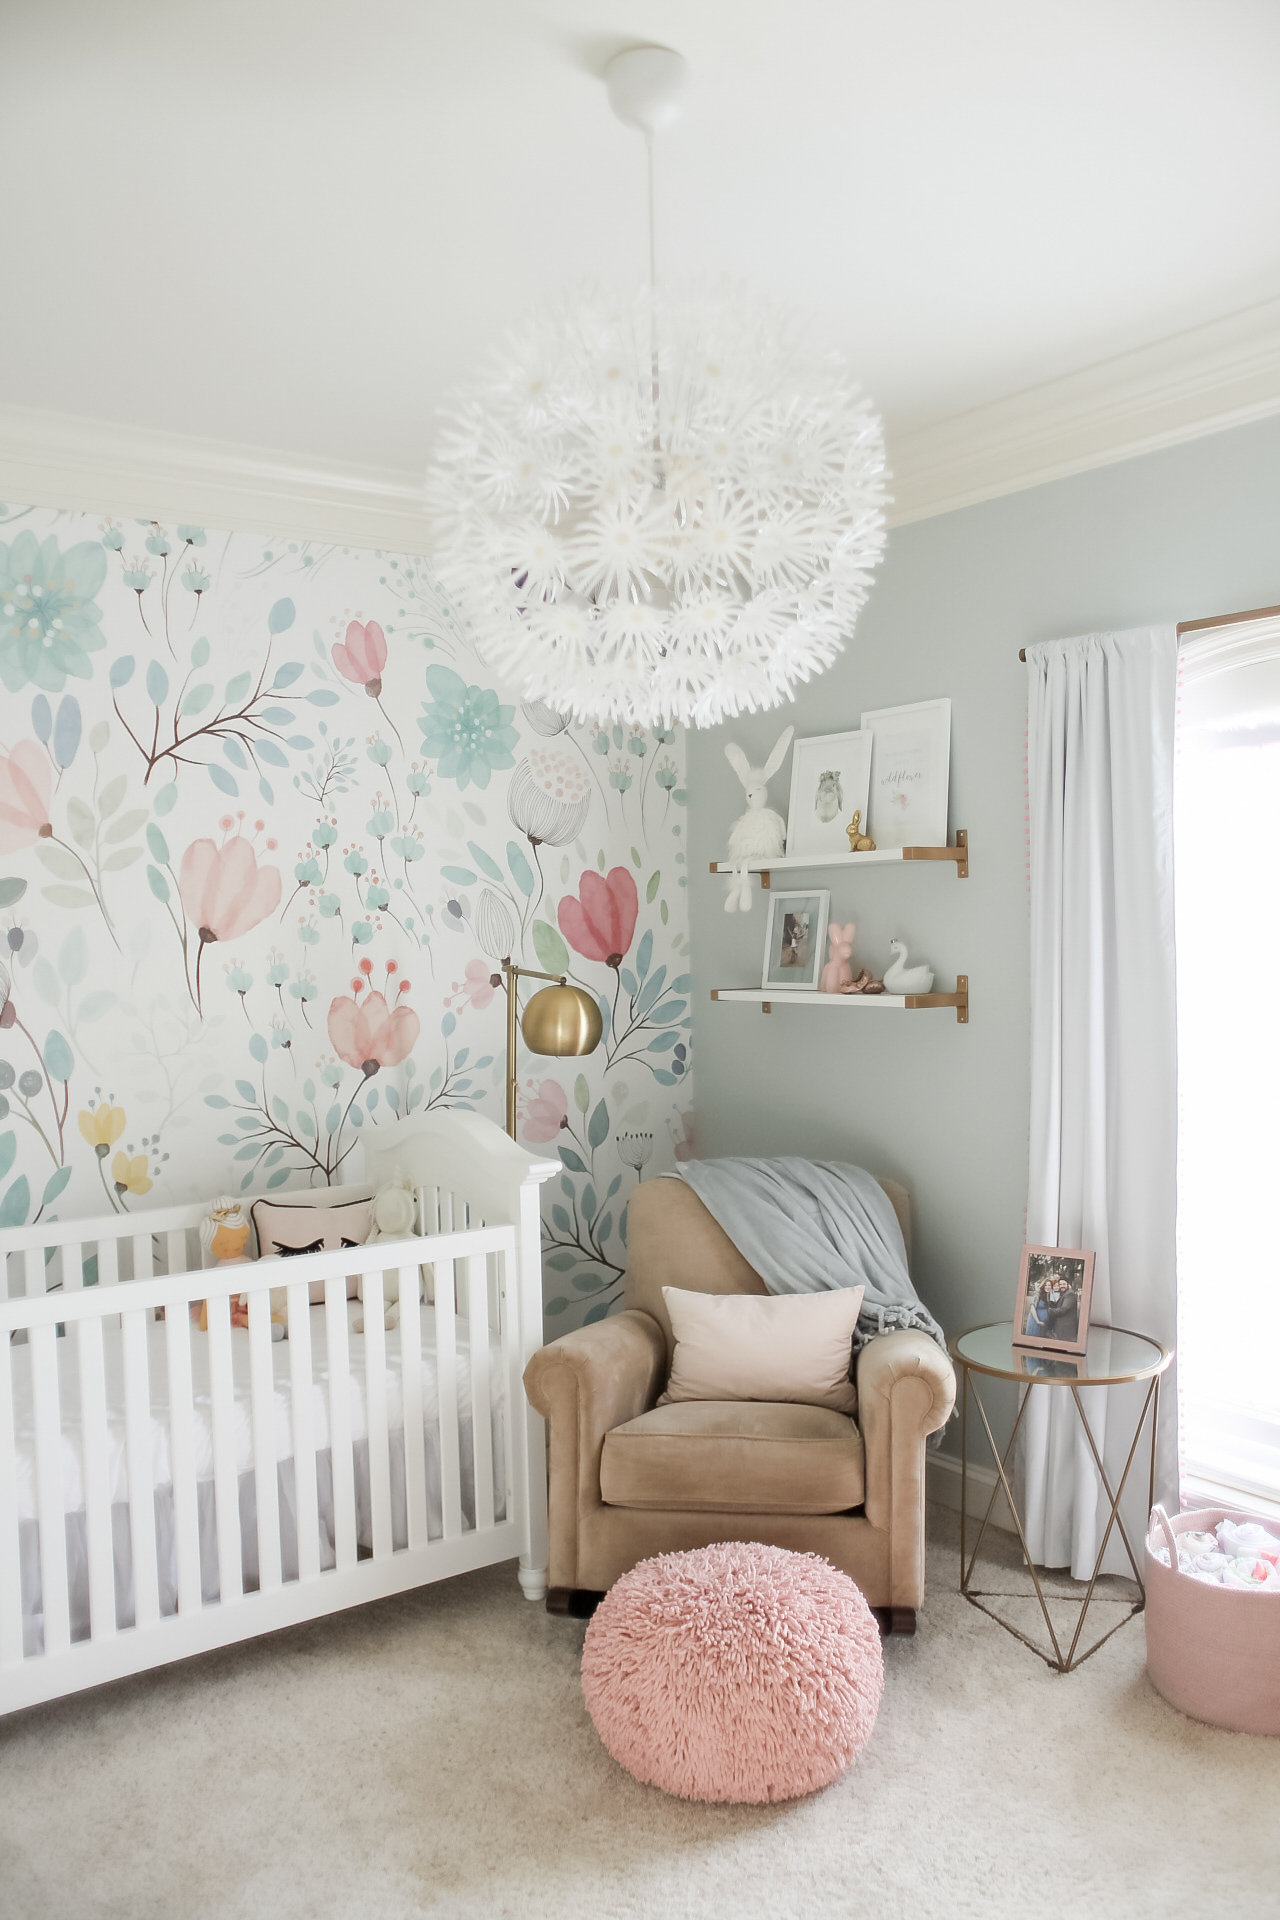 Design Of Baby Room: Bright And Whimsical Nursery For Colette